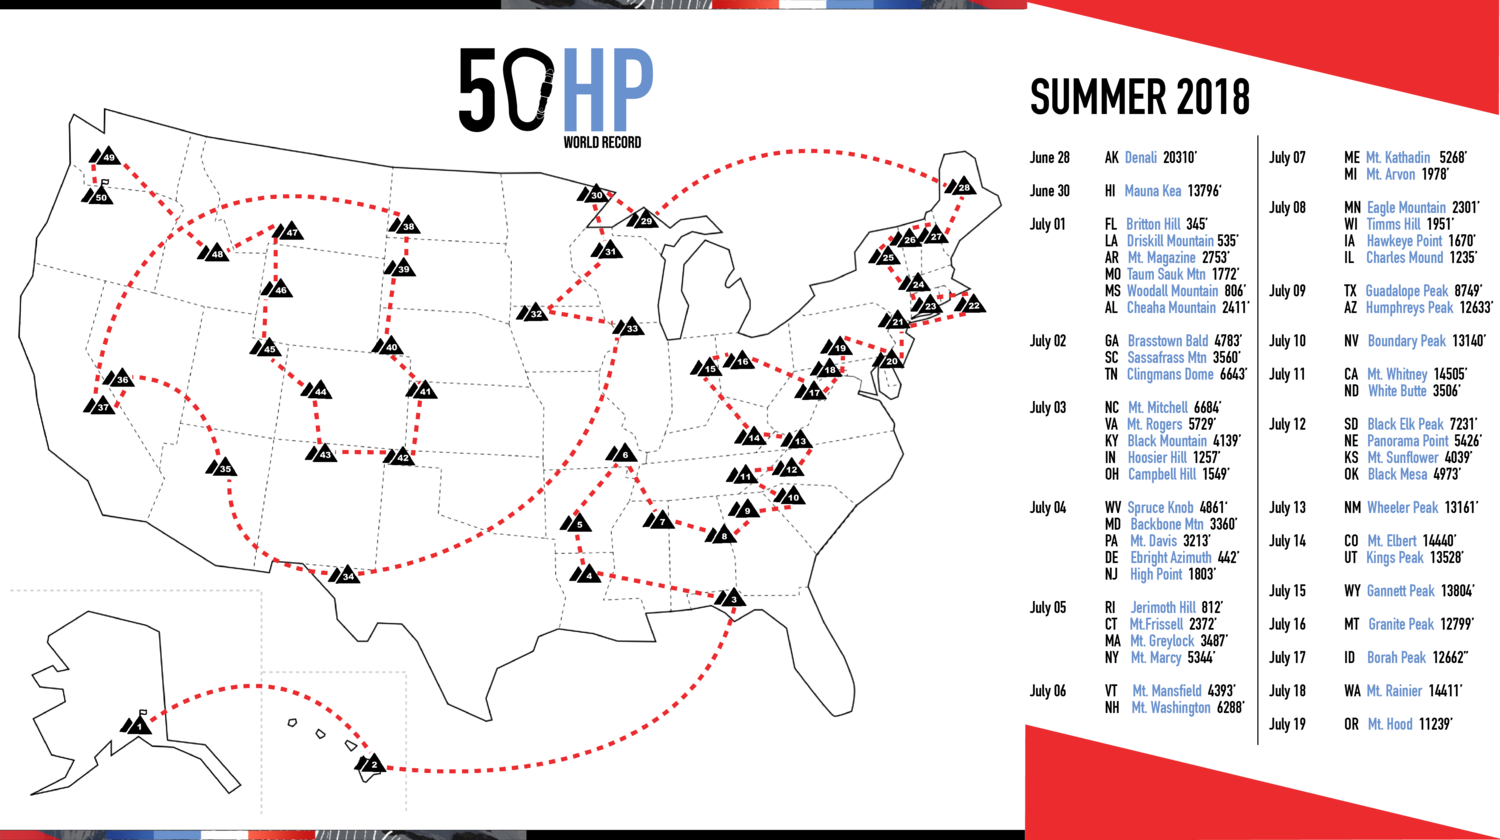 Climber Colin O'Brady's proposed route for the 50-state high point challenge. (Via www.colinobrady.com/50hp)